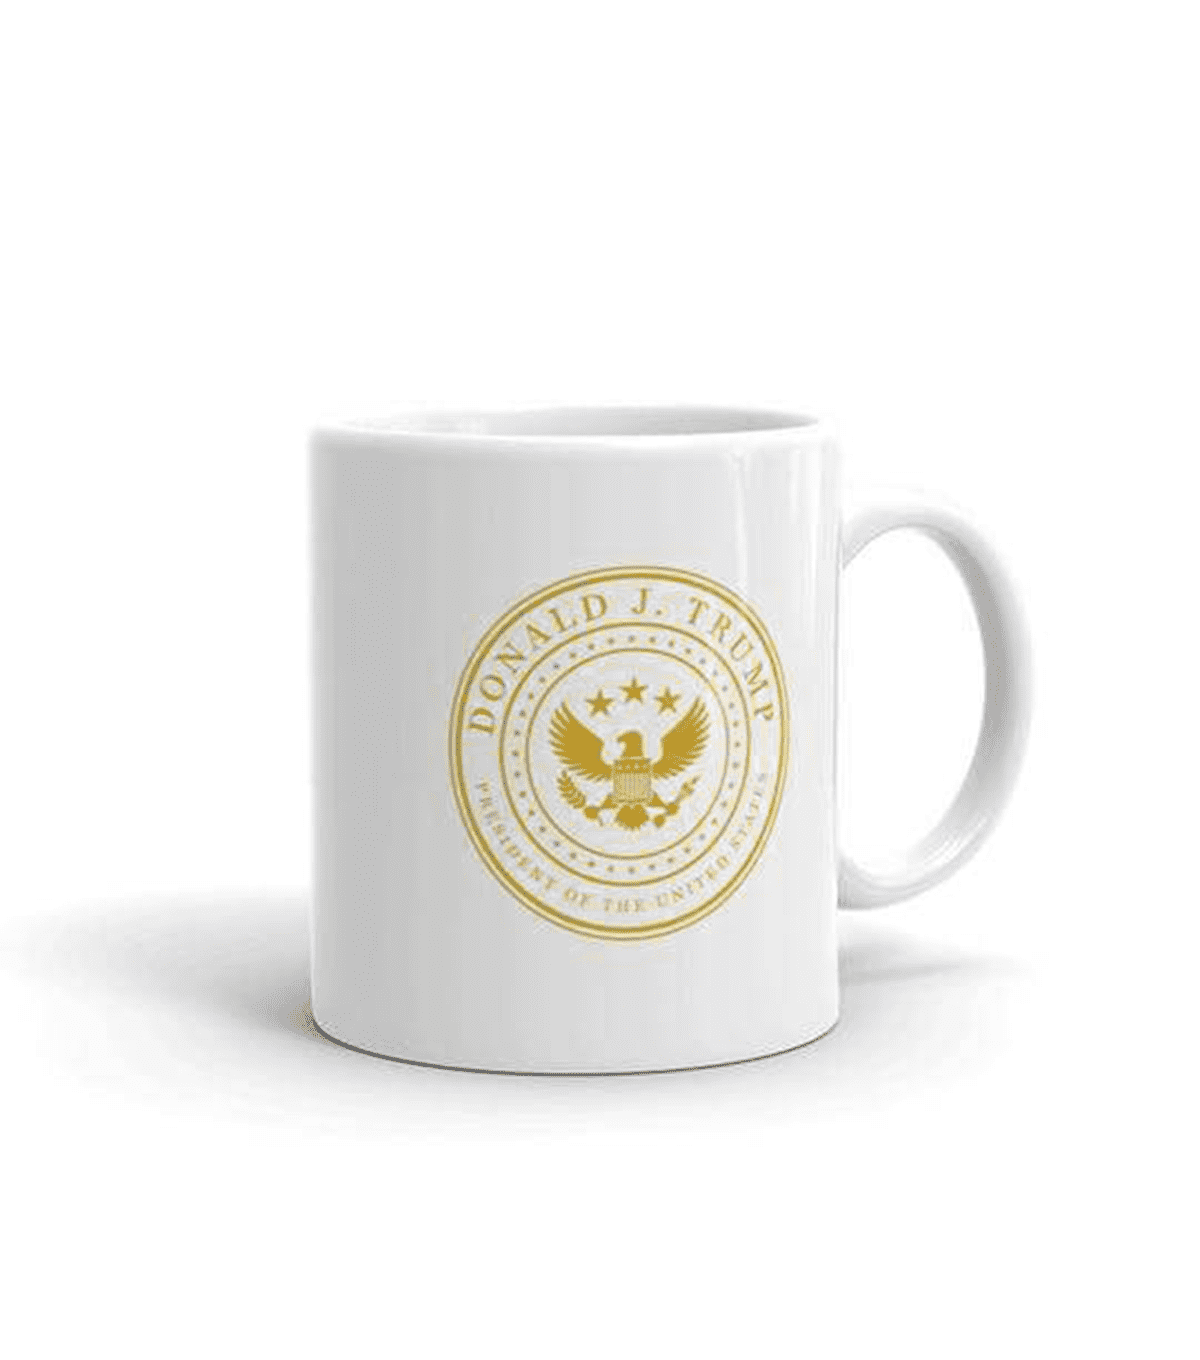 White & Gold Presidential Coffee Mug